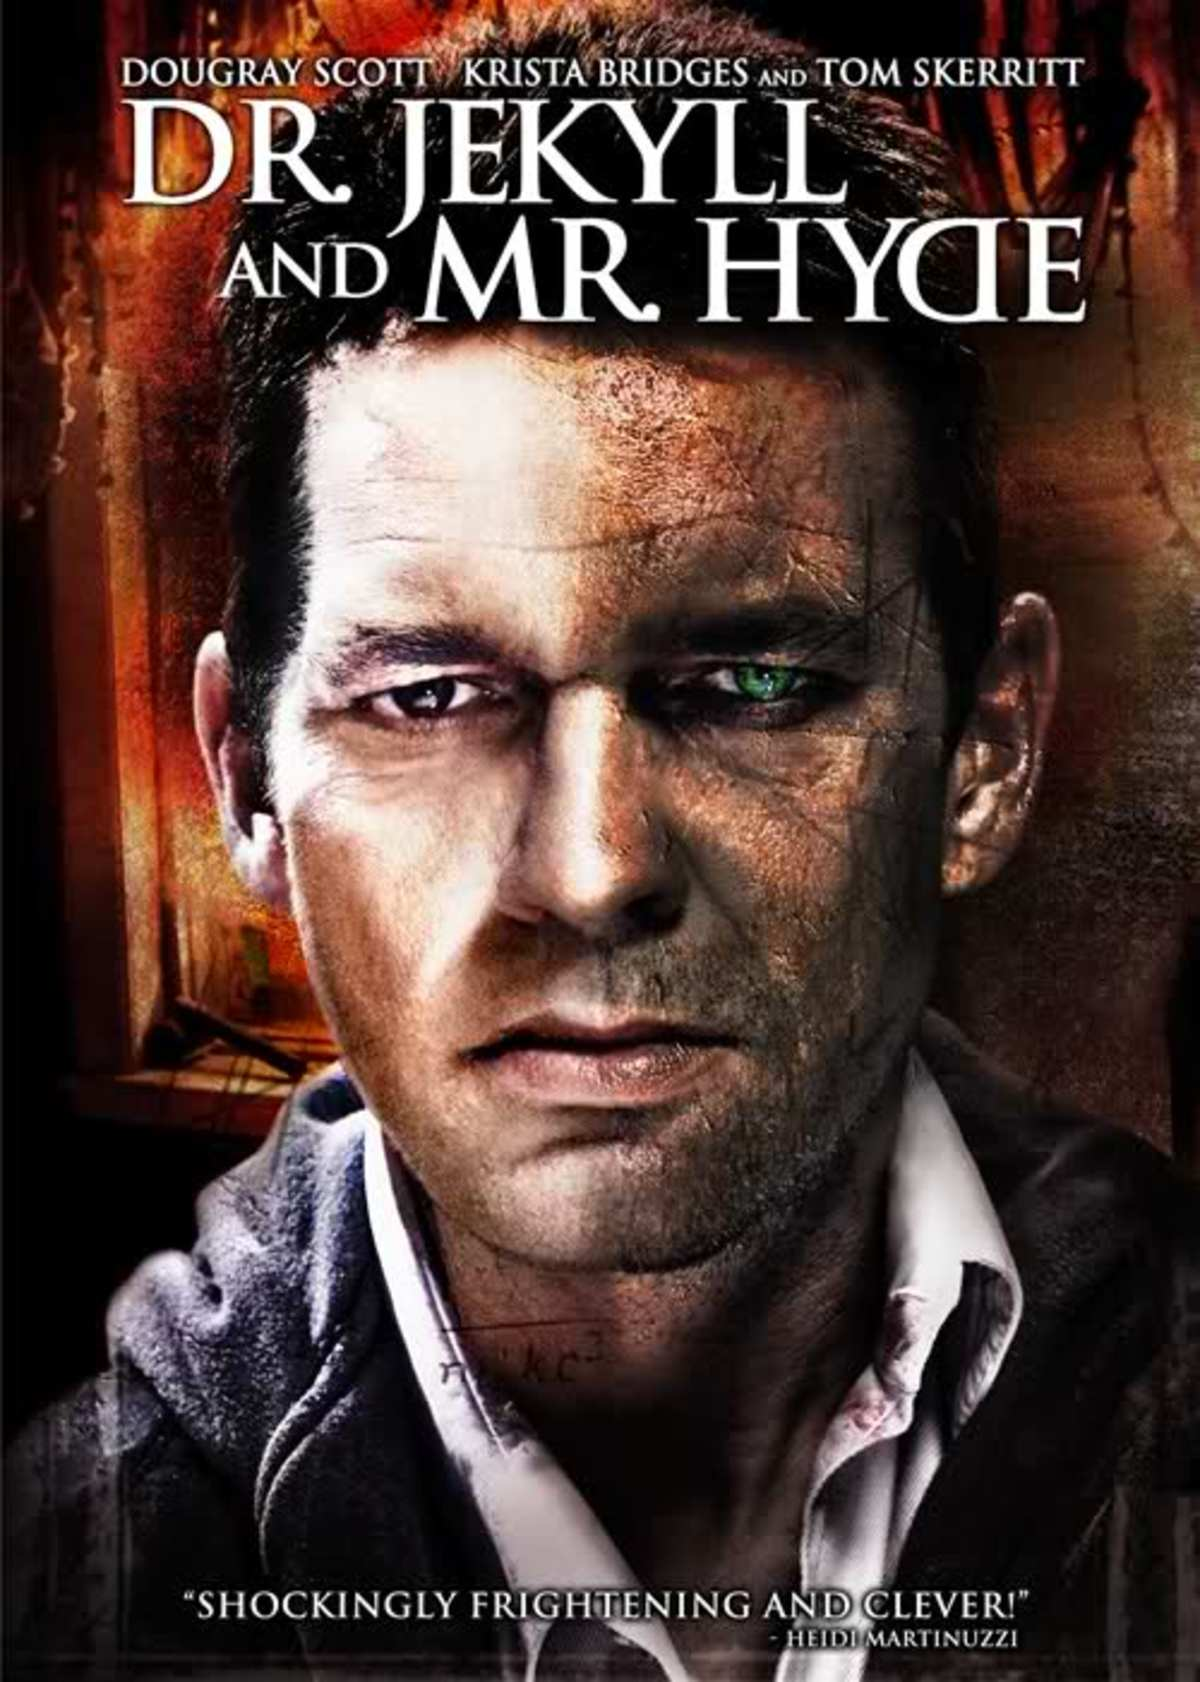 Dr. Jekyll And Mr. Hyde (2008) Horror, Thriller, Sci-Fi